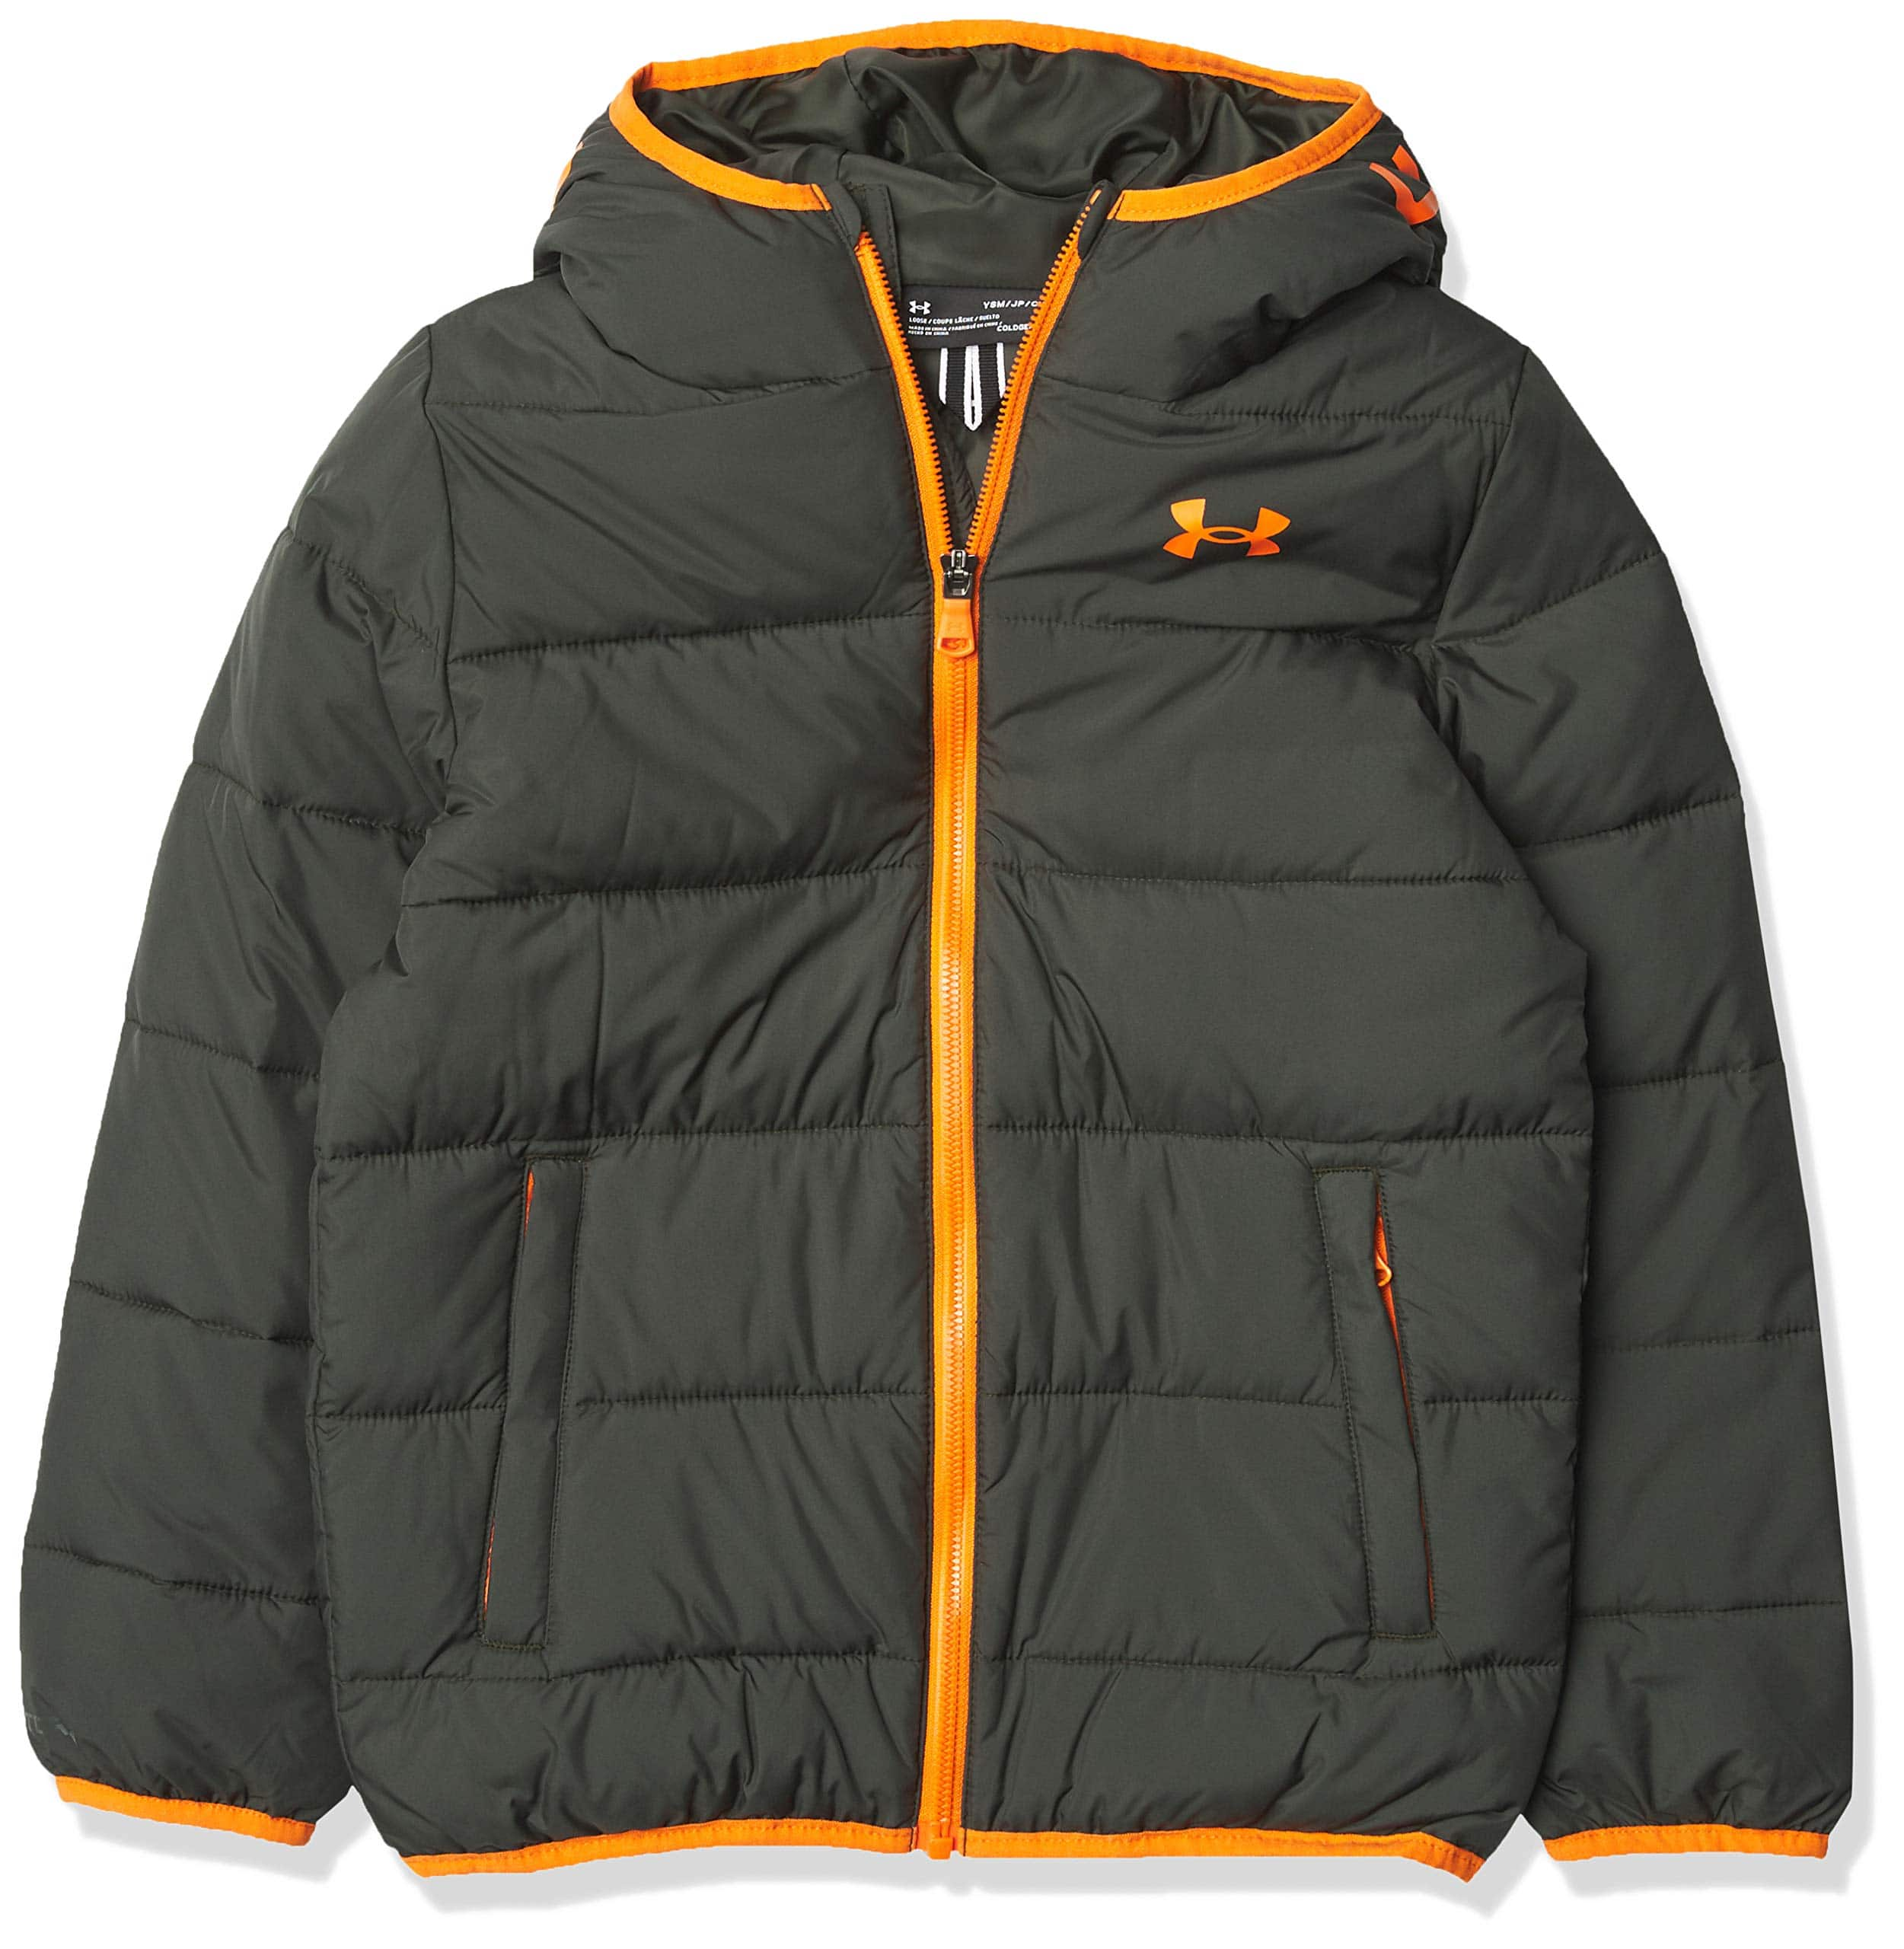 Under Armour Boys' Pronto Puffer Jacket (Large) $25.90 at Amazon